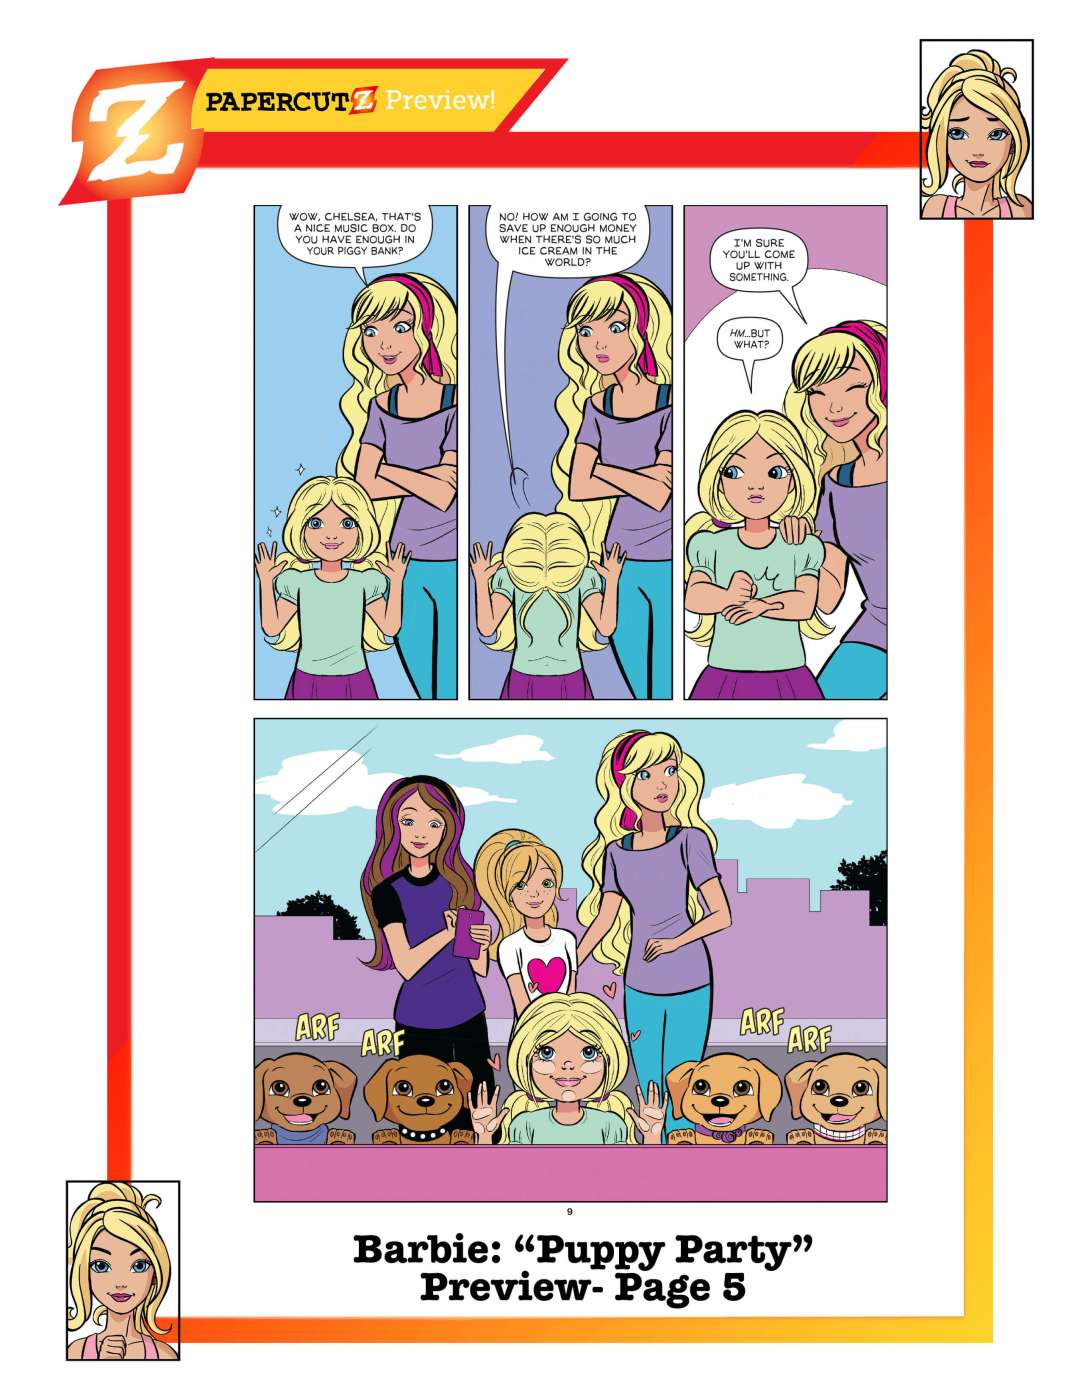 barbie_puppies_preview_page5